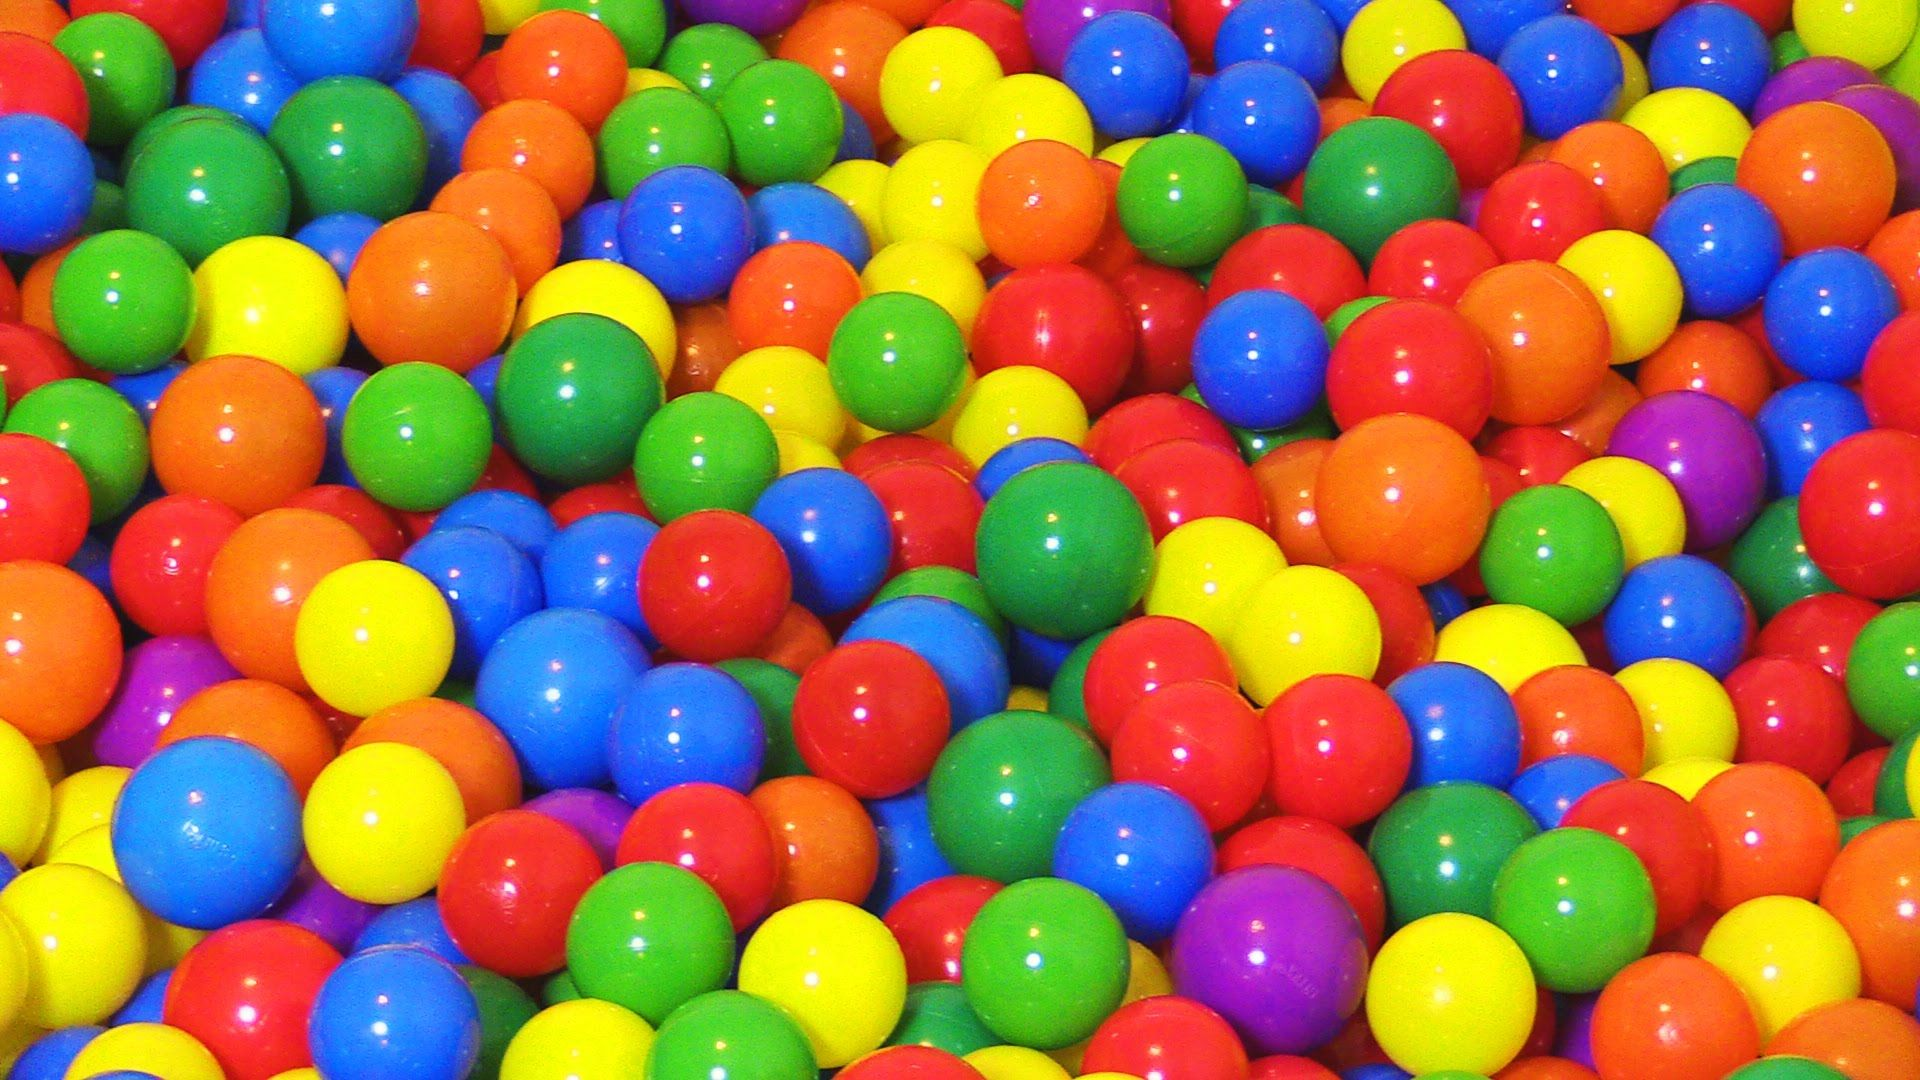 The Ball Pit Show For Learning Colors Children S Educational Video Ball Pit Kids Ball Pit Learning Colors